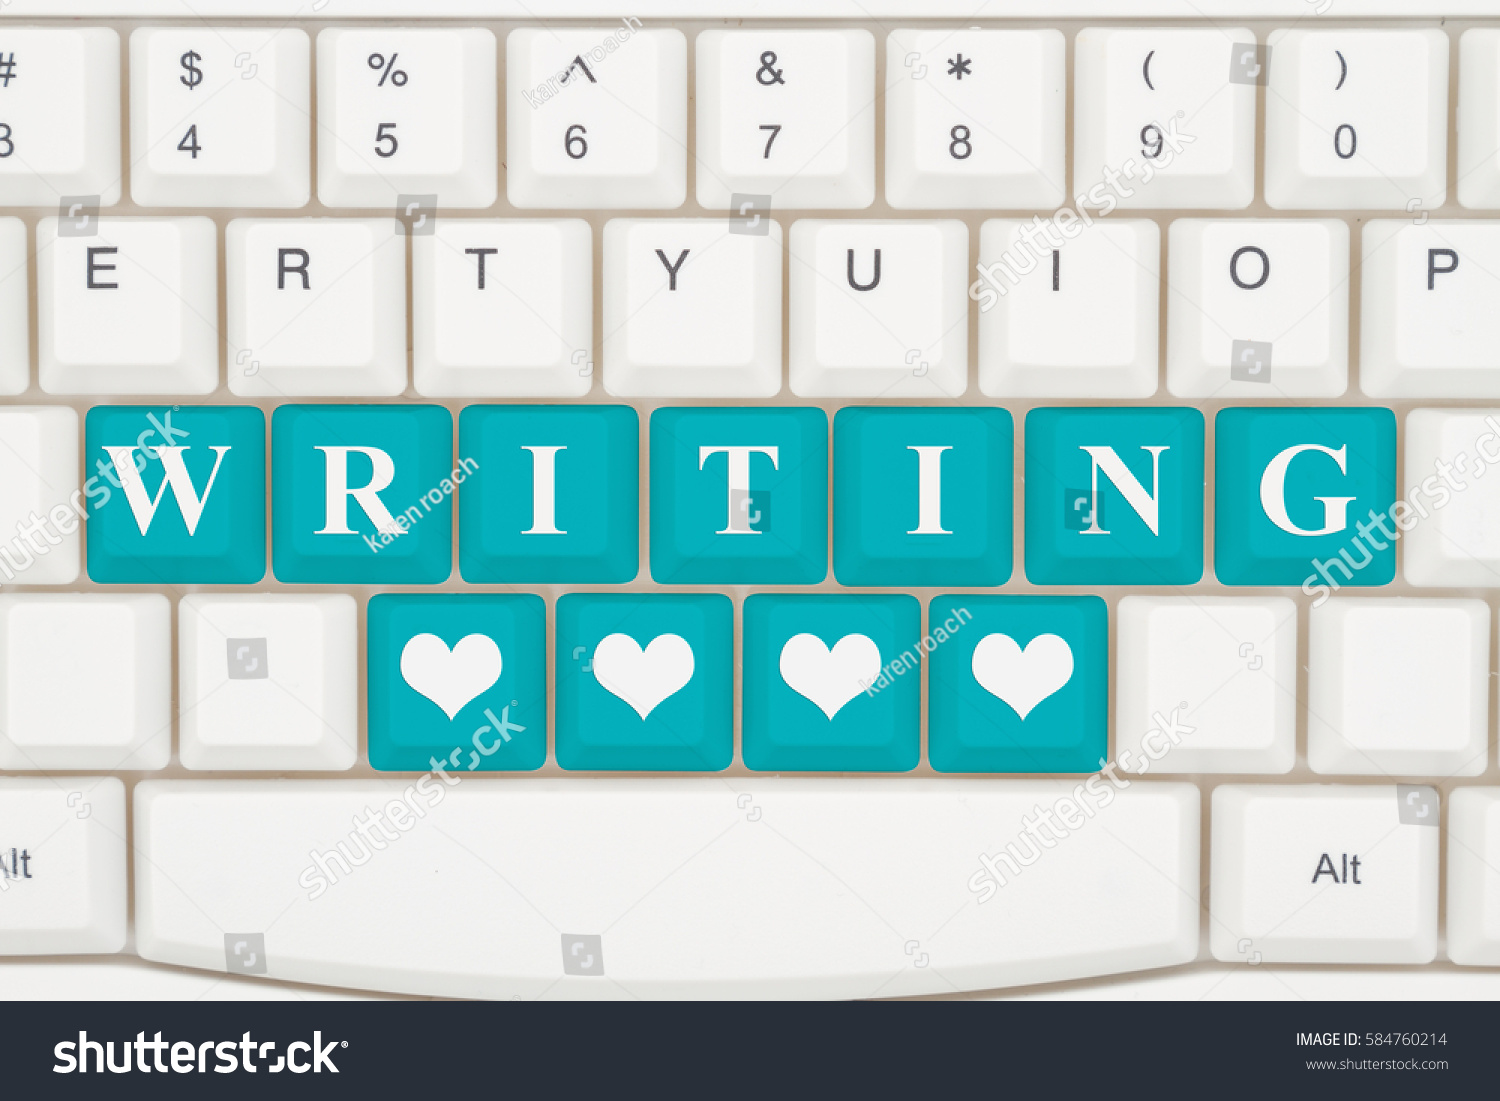 Symbols from keyboard images symbol and sign ideas secret keyboard symbols choice image symbol and sign ideas heart symbols on keyboard gallery symbol and buycottarizona